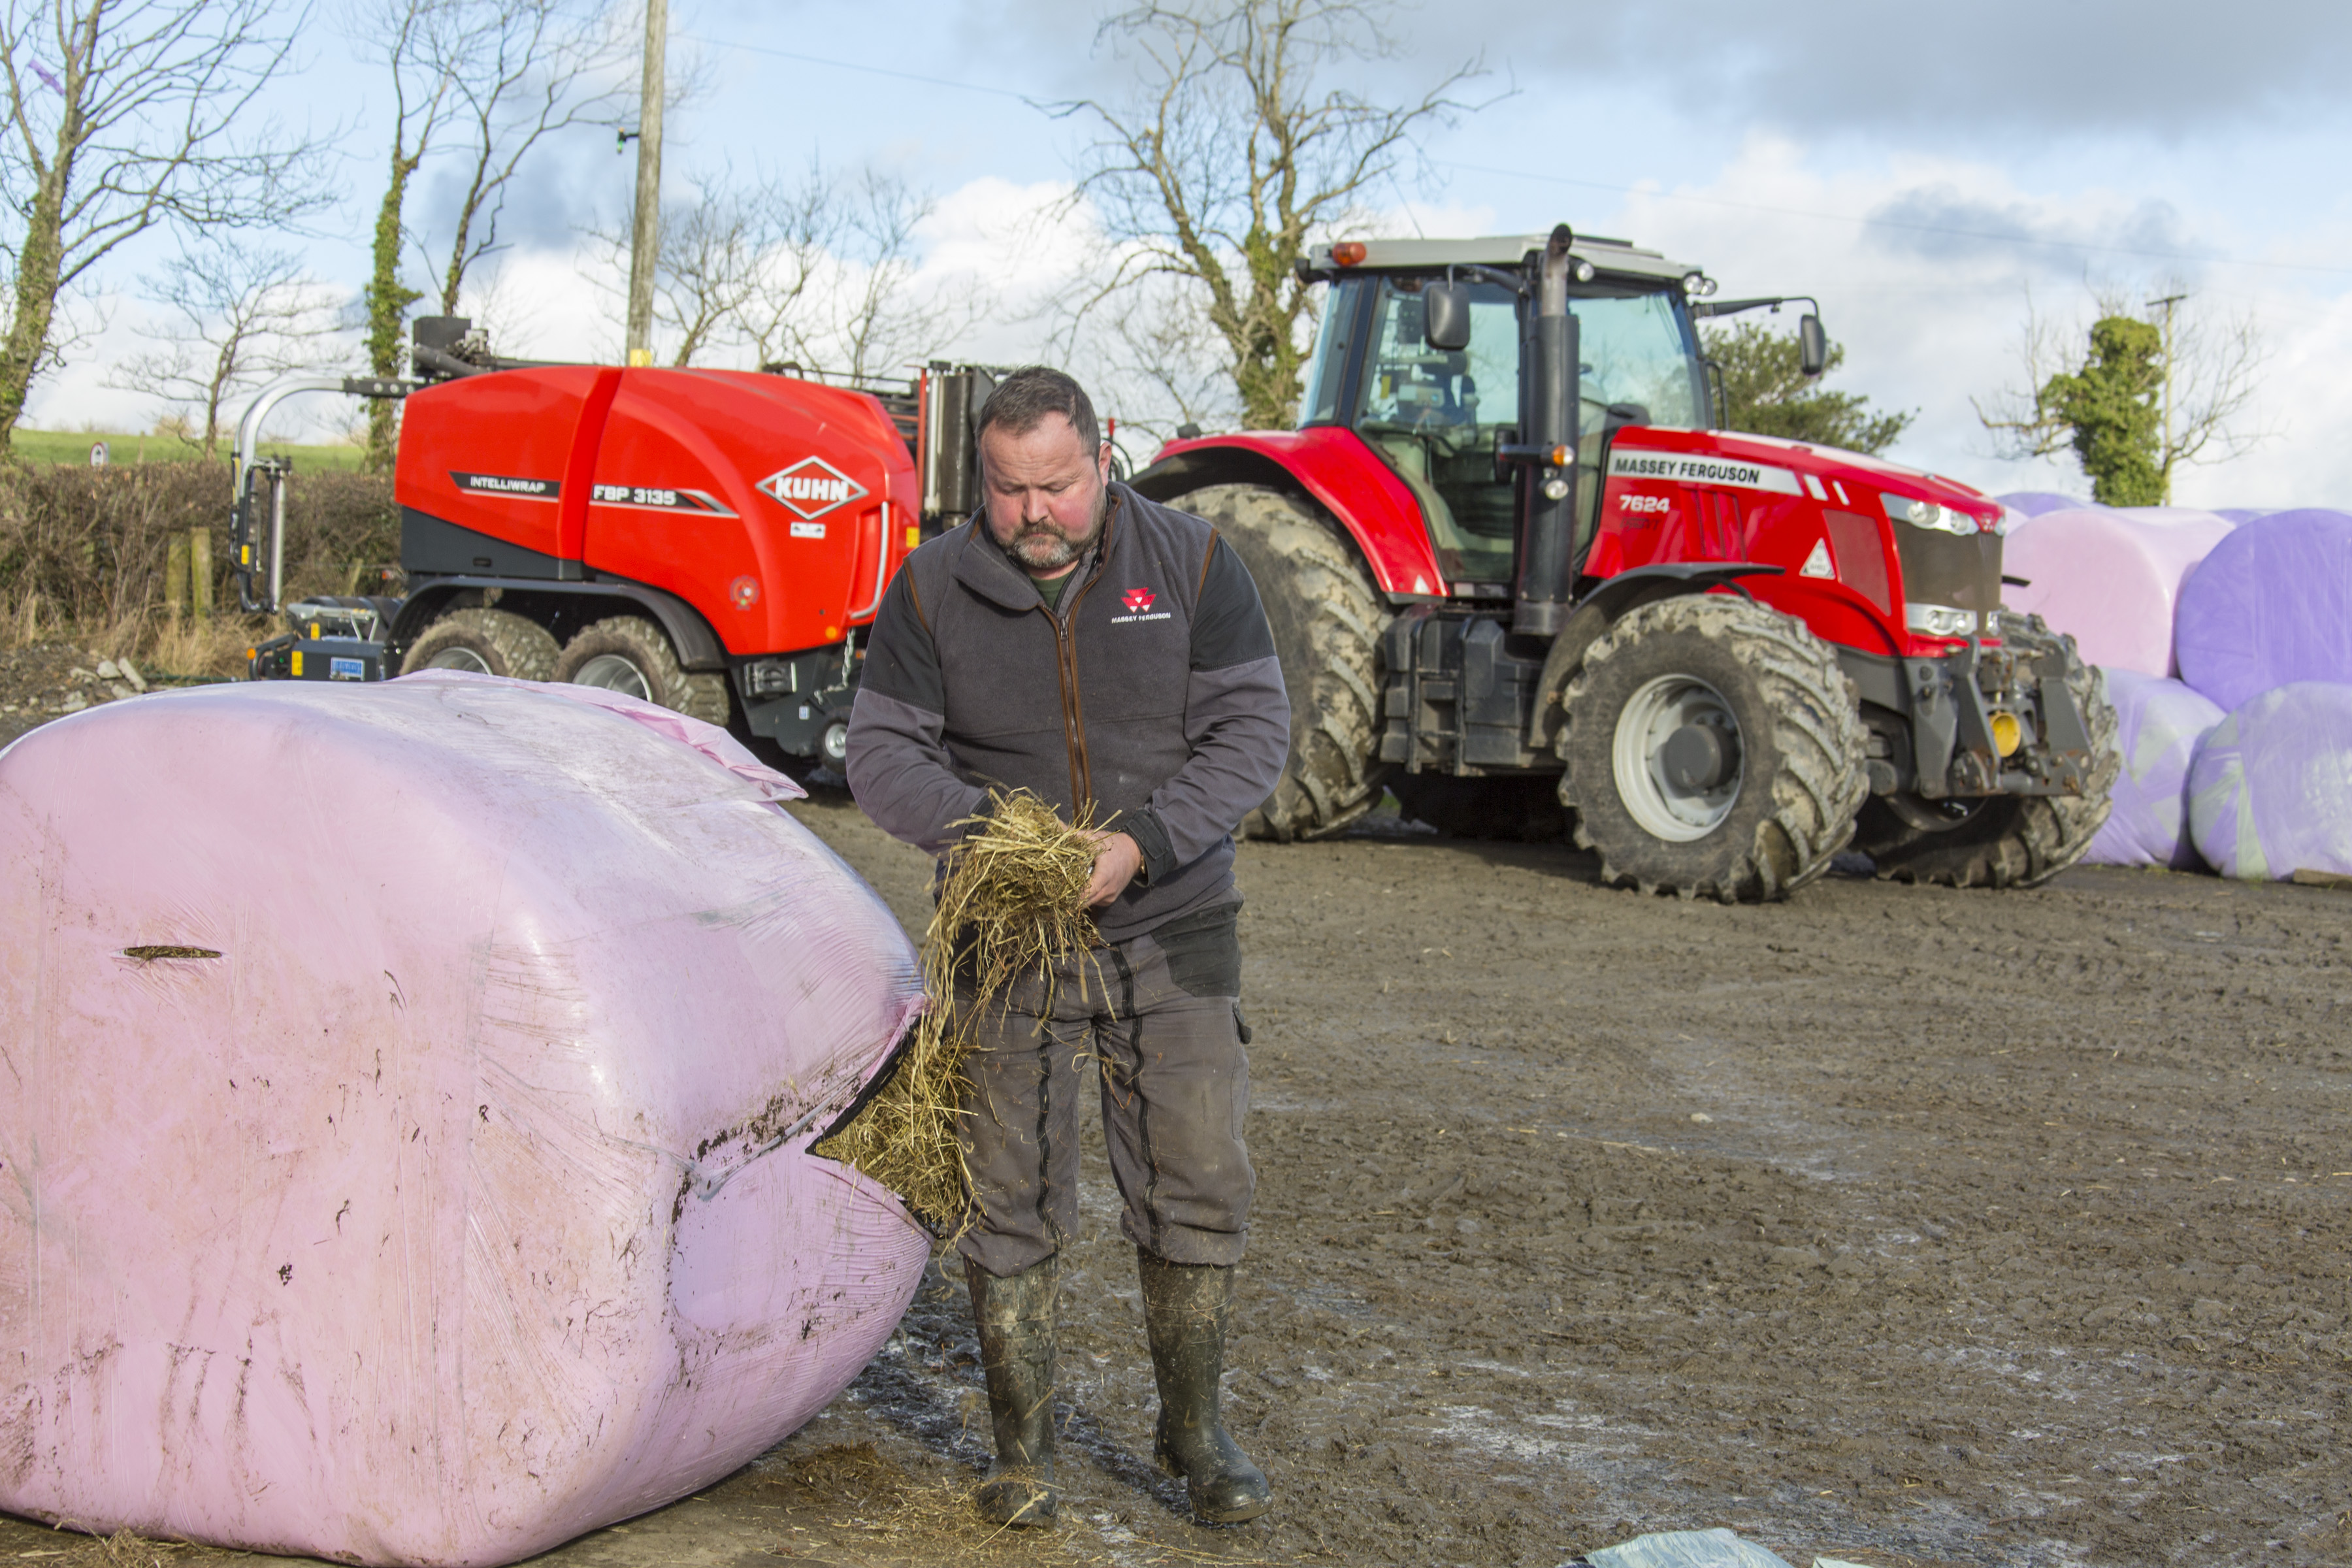 Separating net from wrap prior to recycling is a thing of the past for farmer and contractor Mike Hughes.